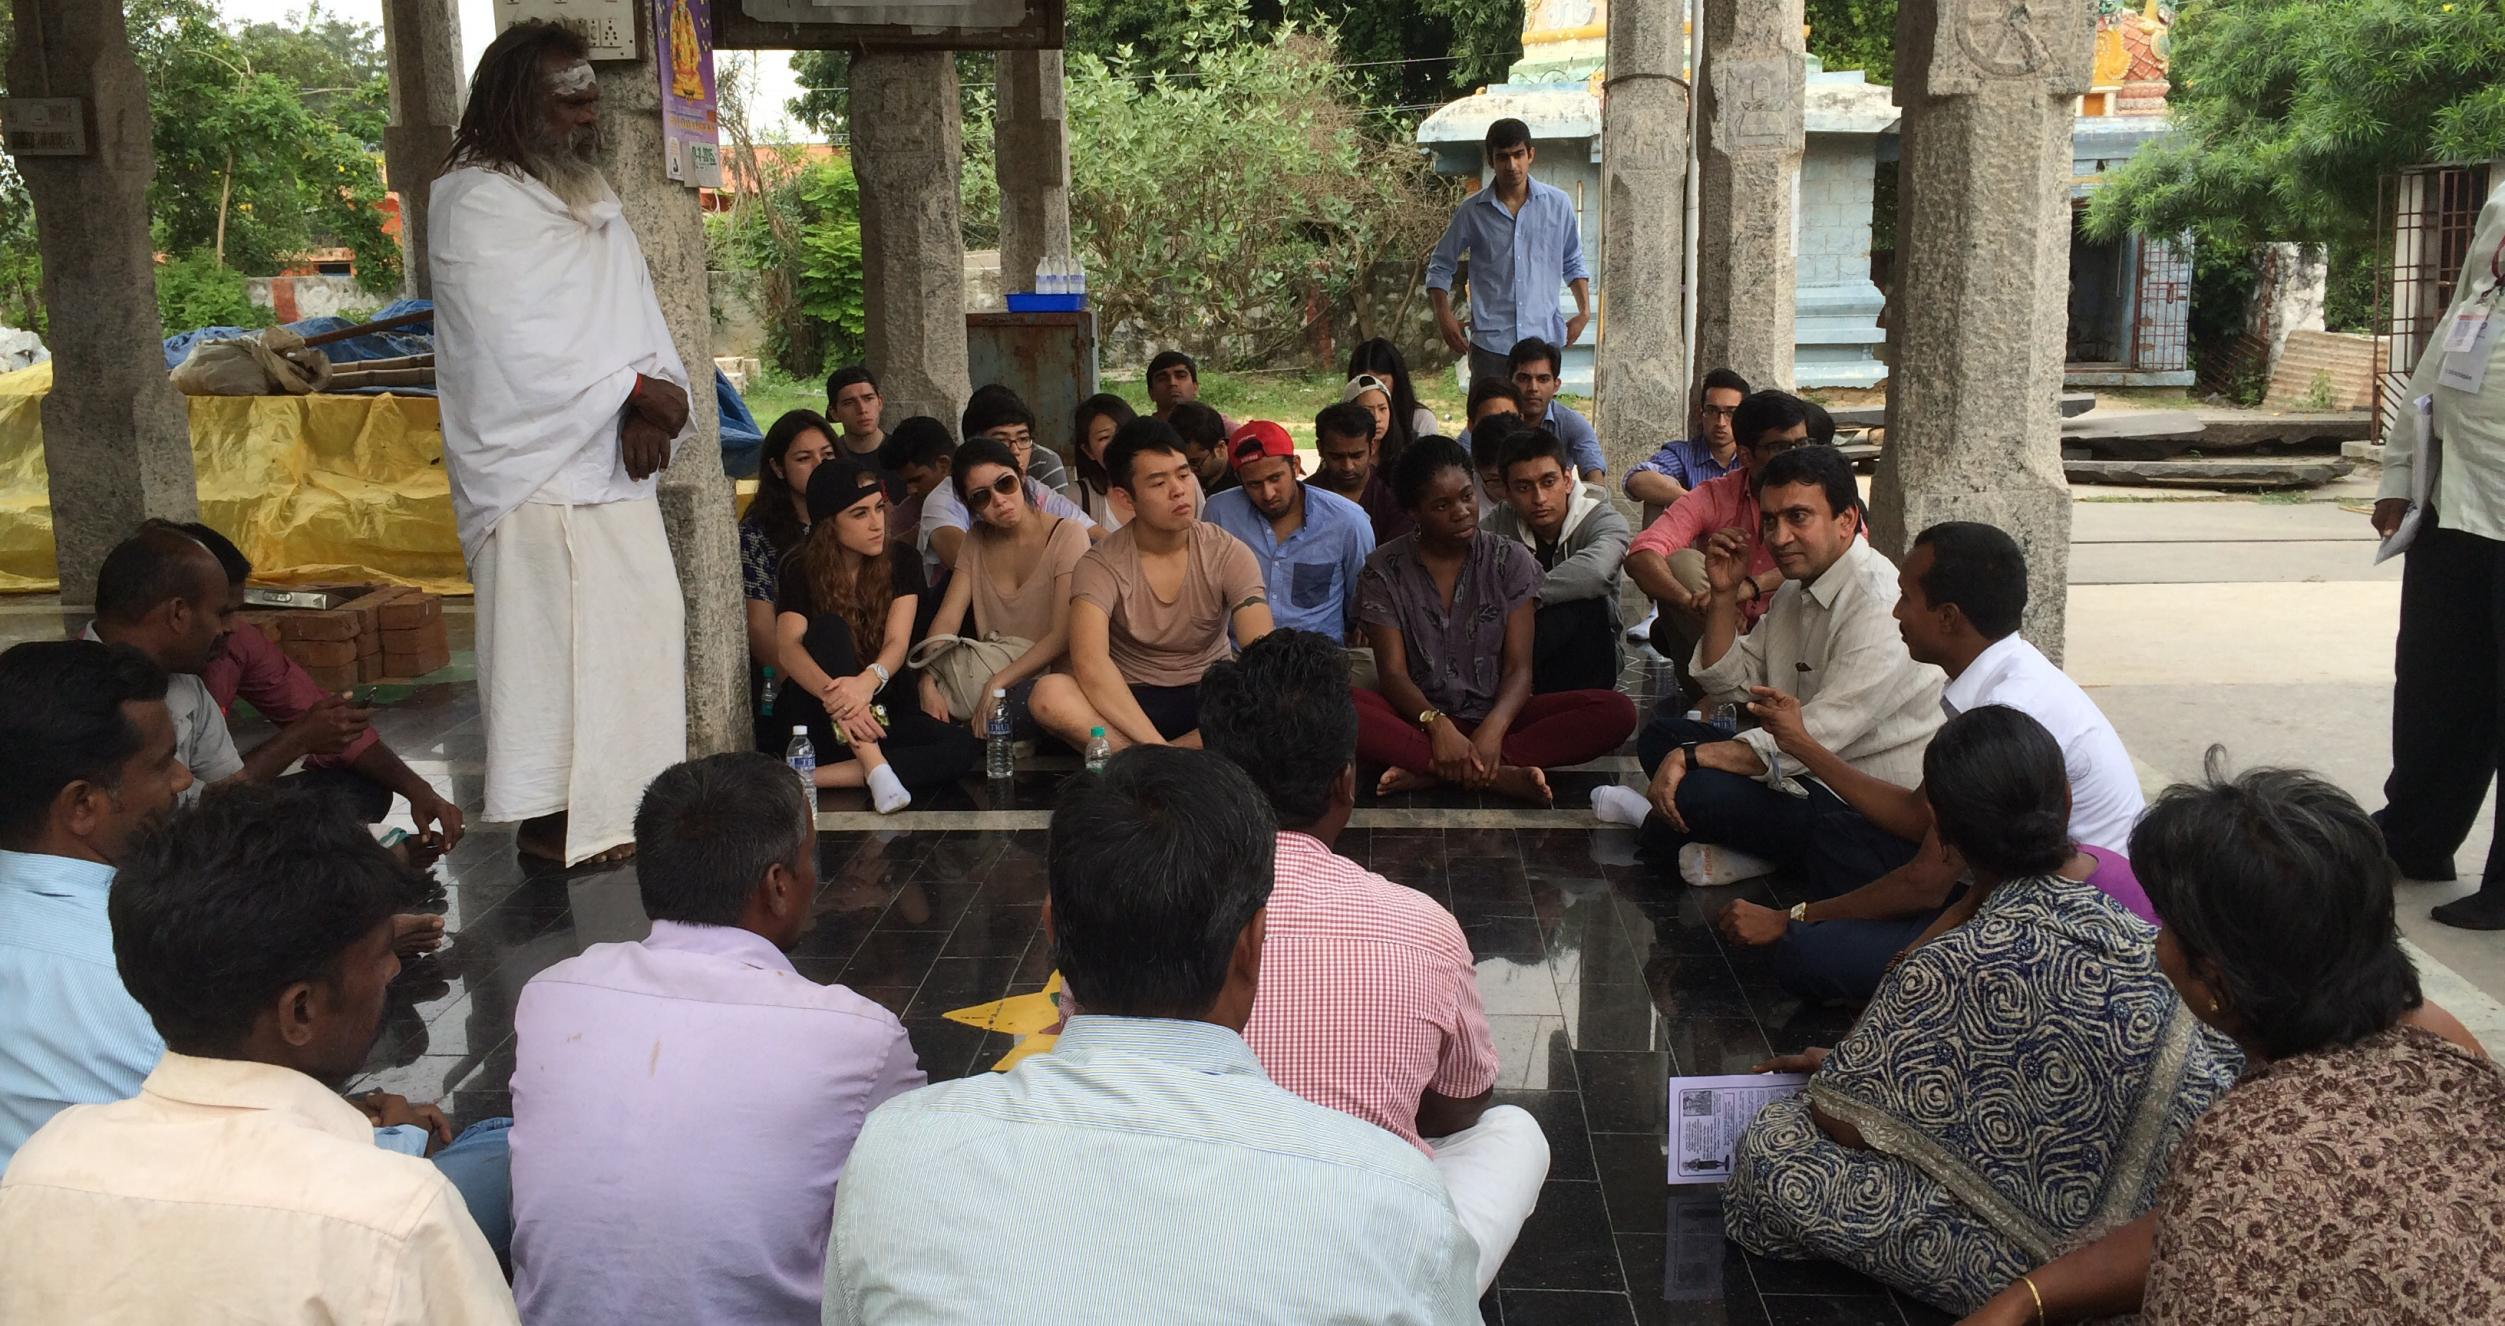 Students on a short-term immersion in India